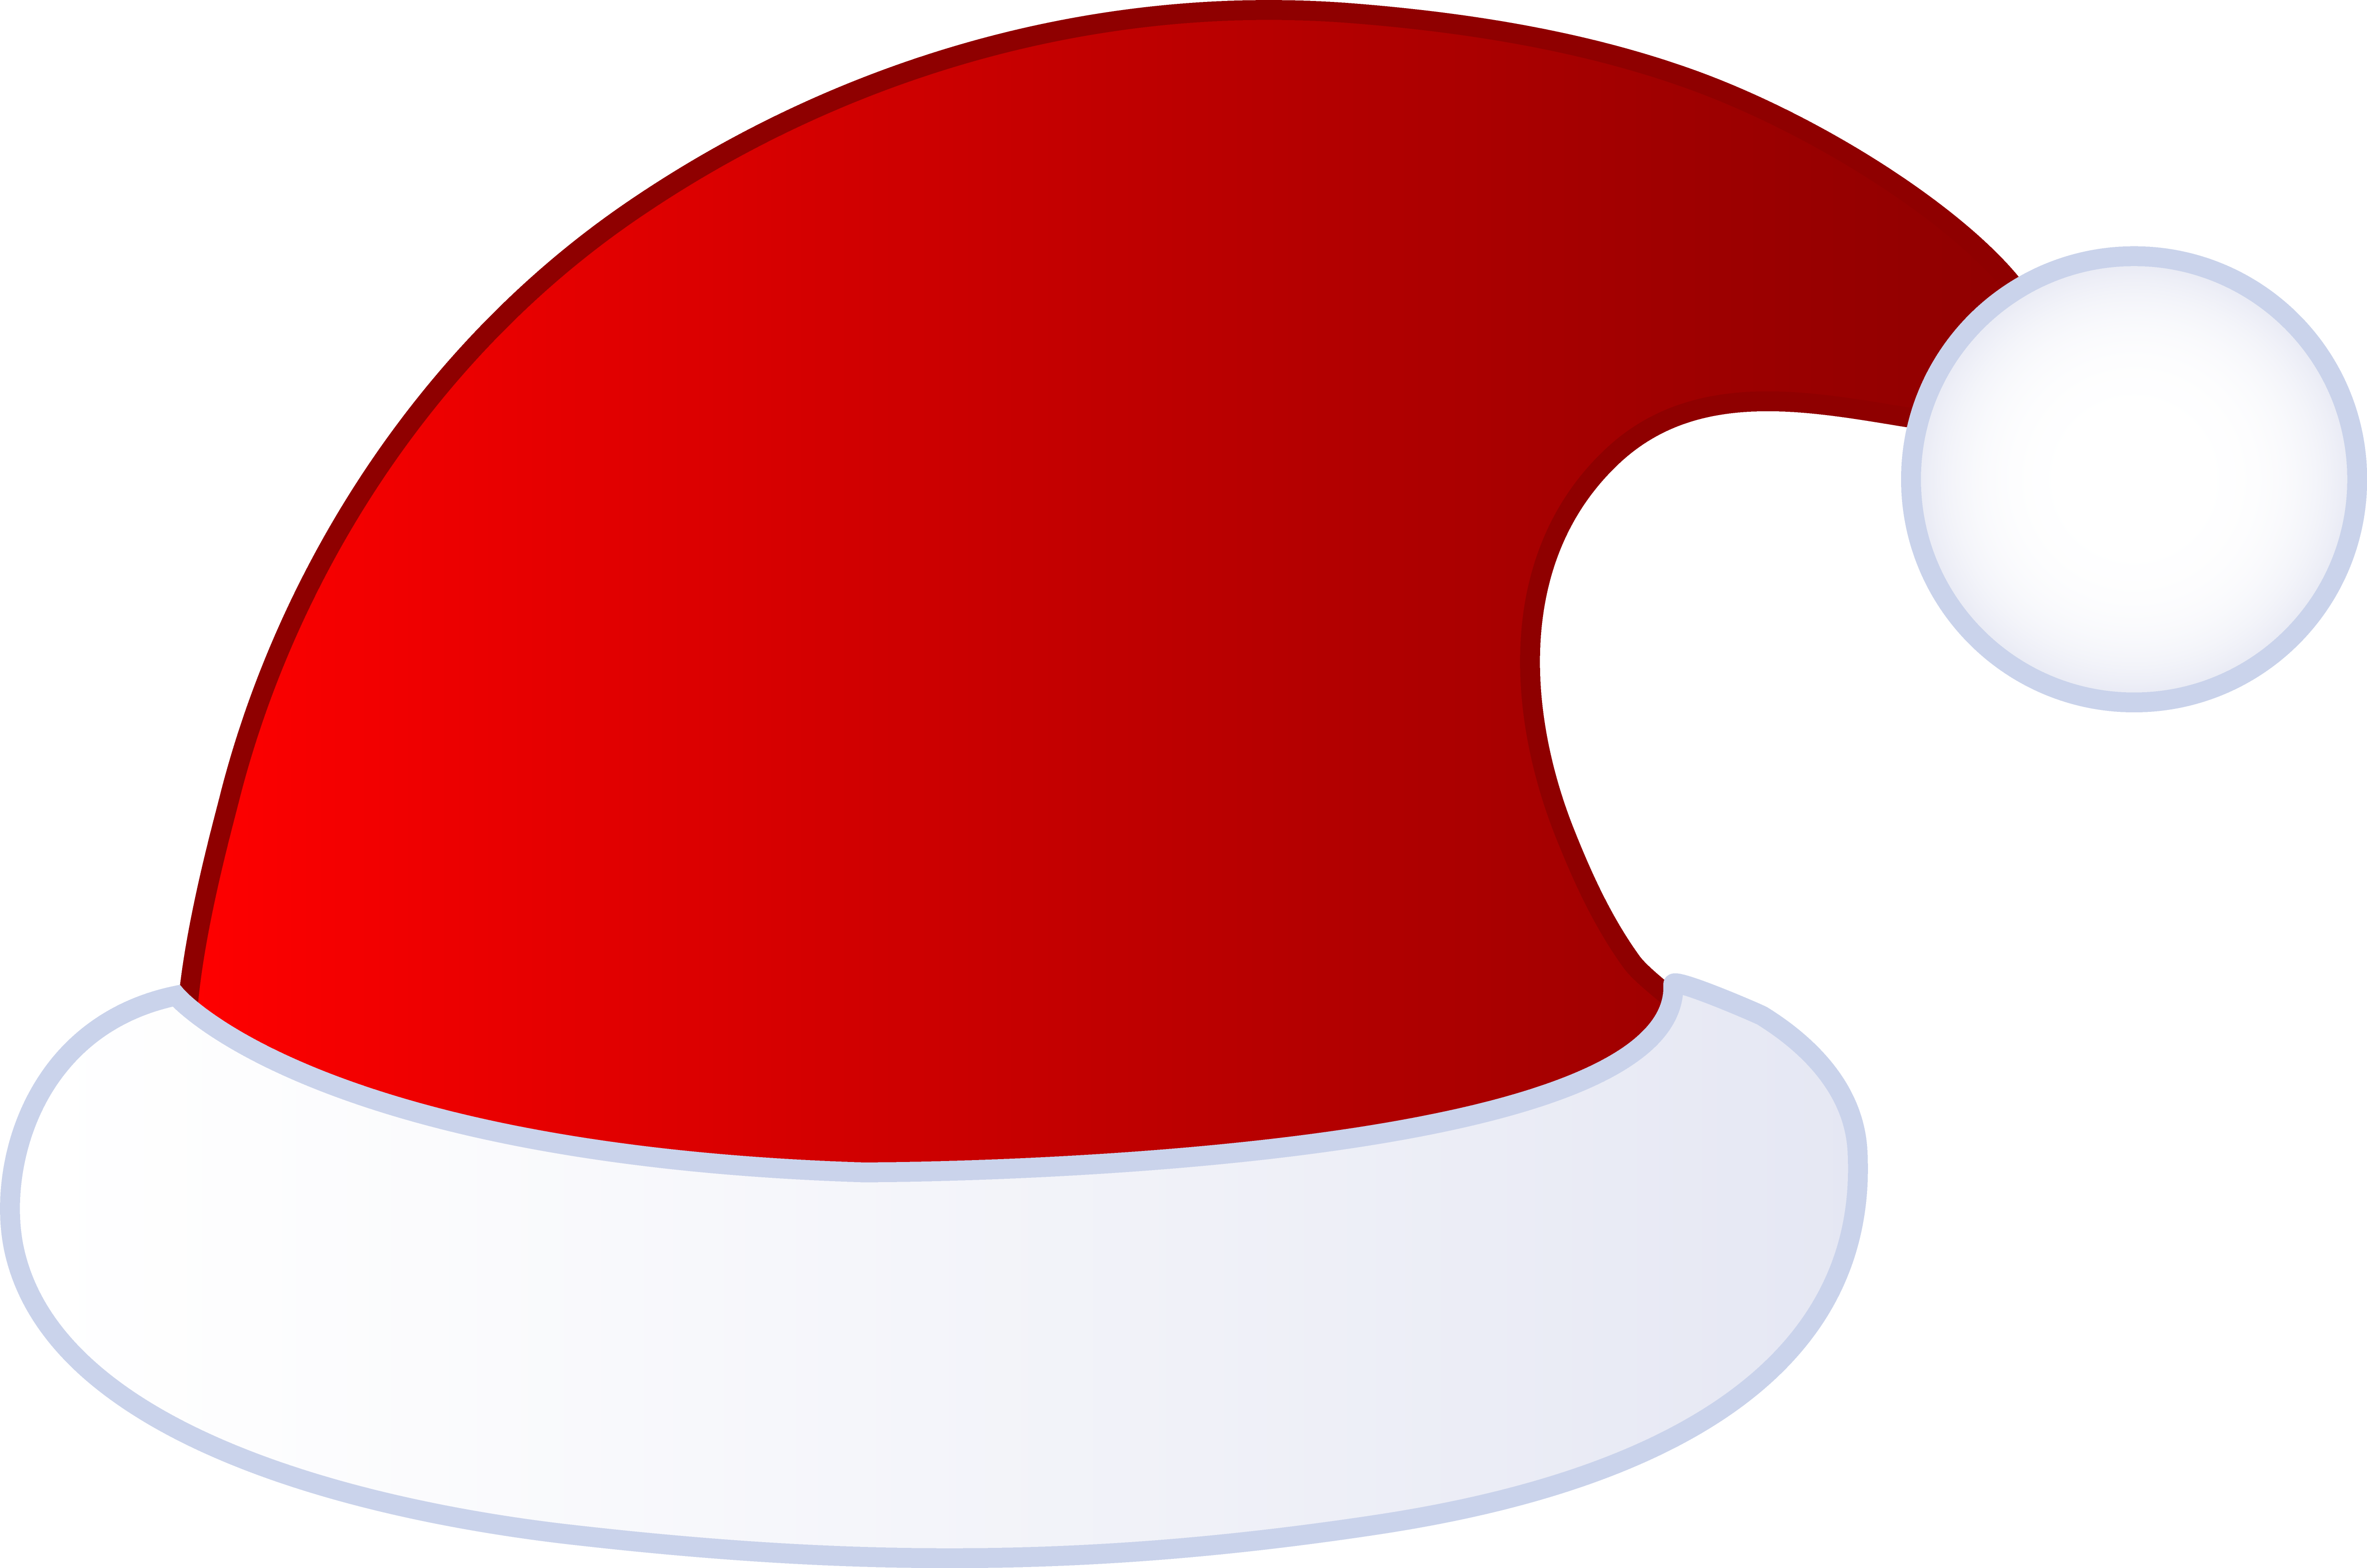 4938x3271 Red Santa Claus Hat